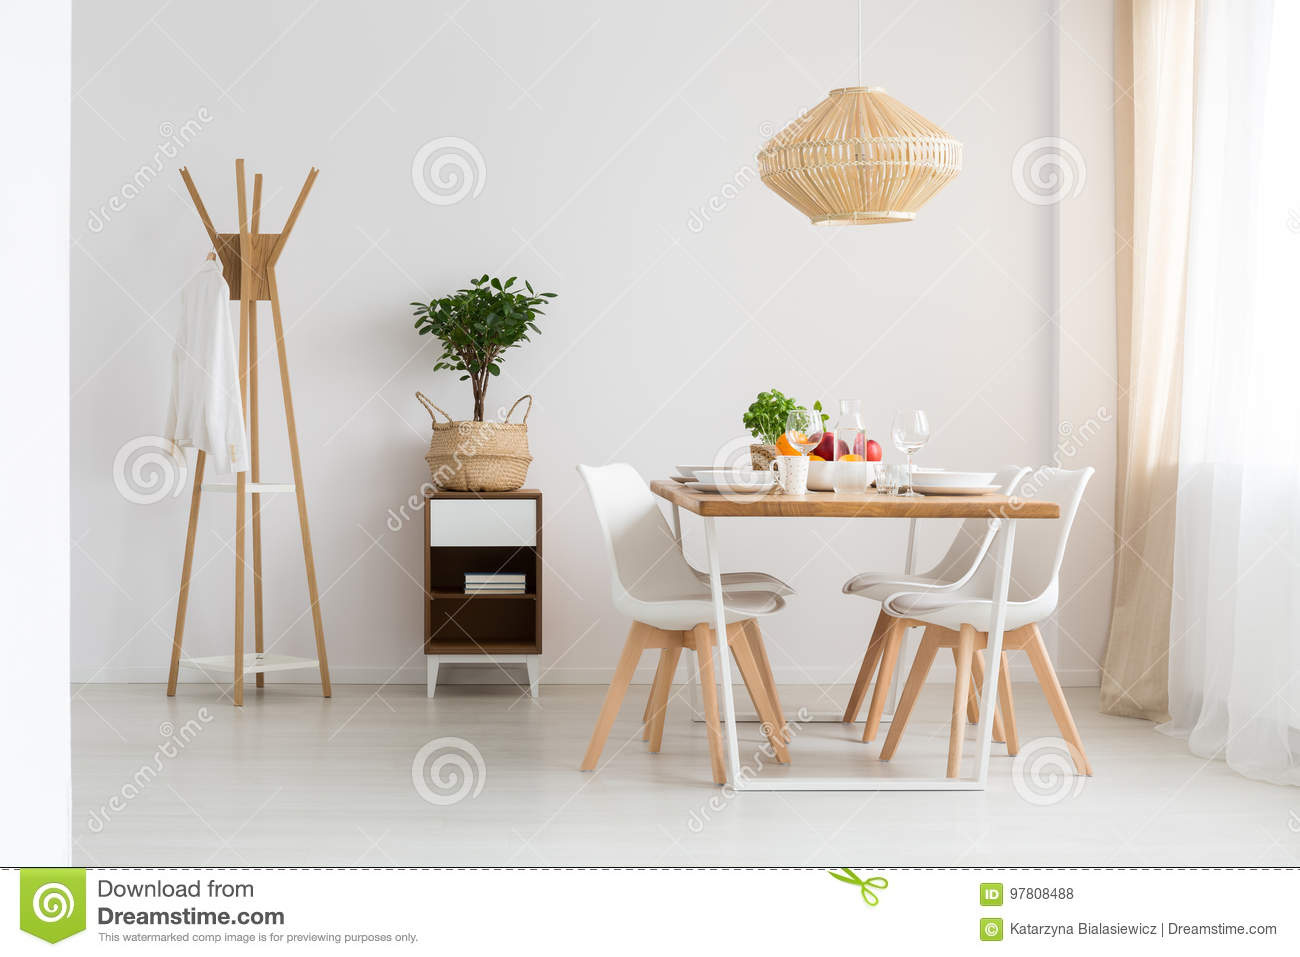 Dining room in apartment stock photo. Image of chairs - 97808488